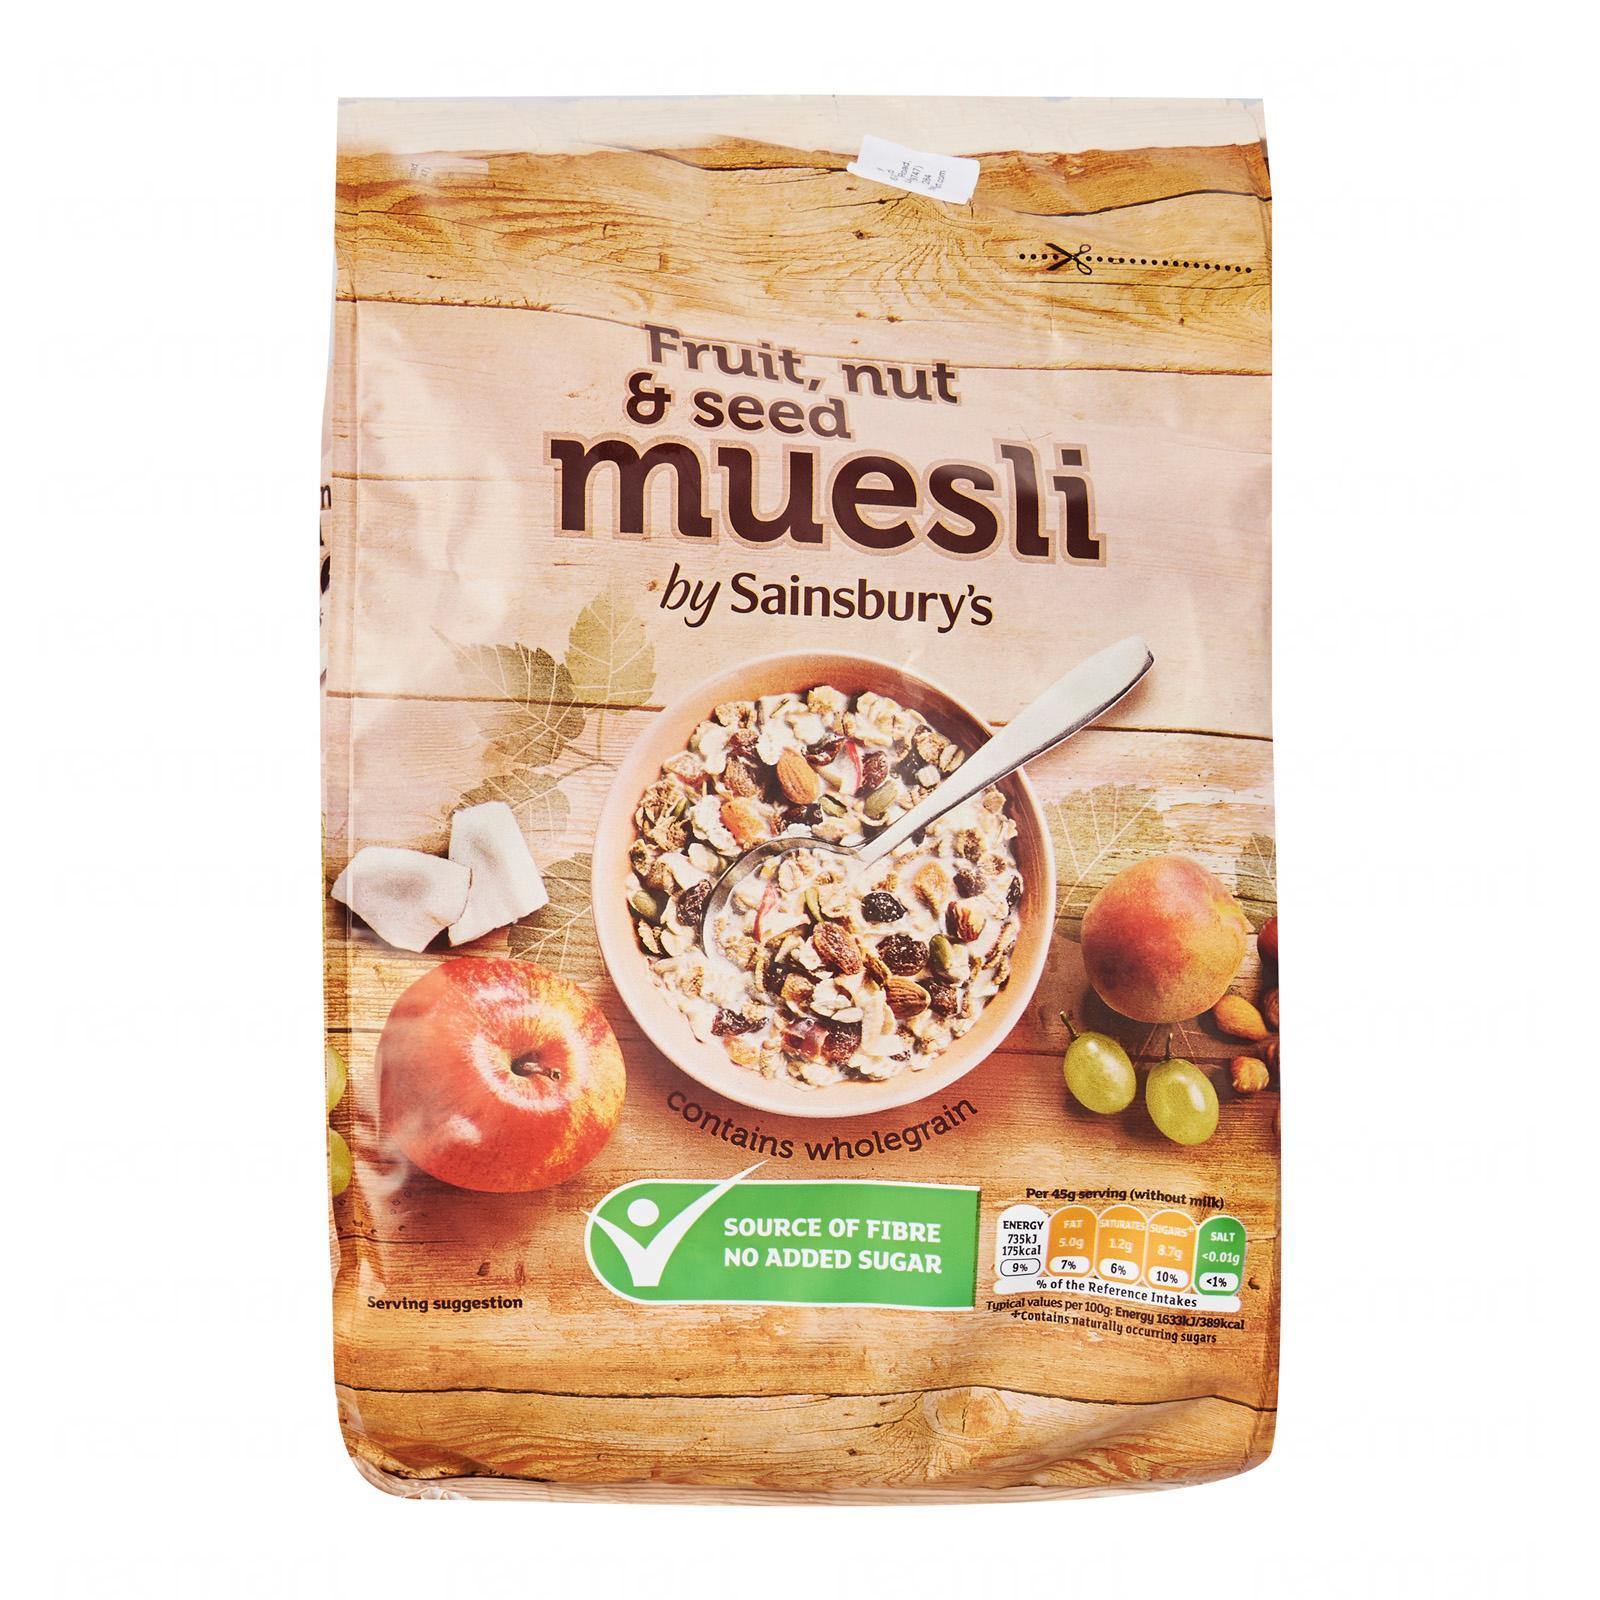 Sainsbury's Muesli Fruit and Nut